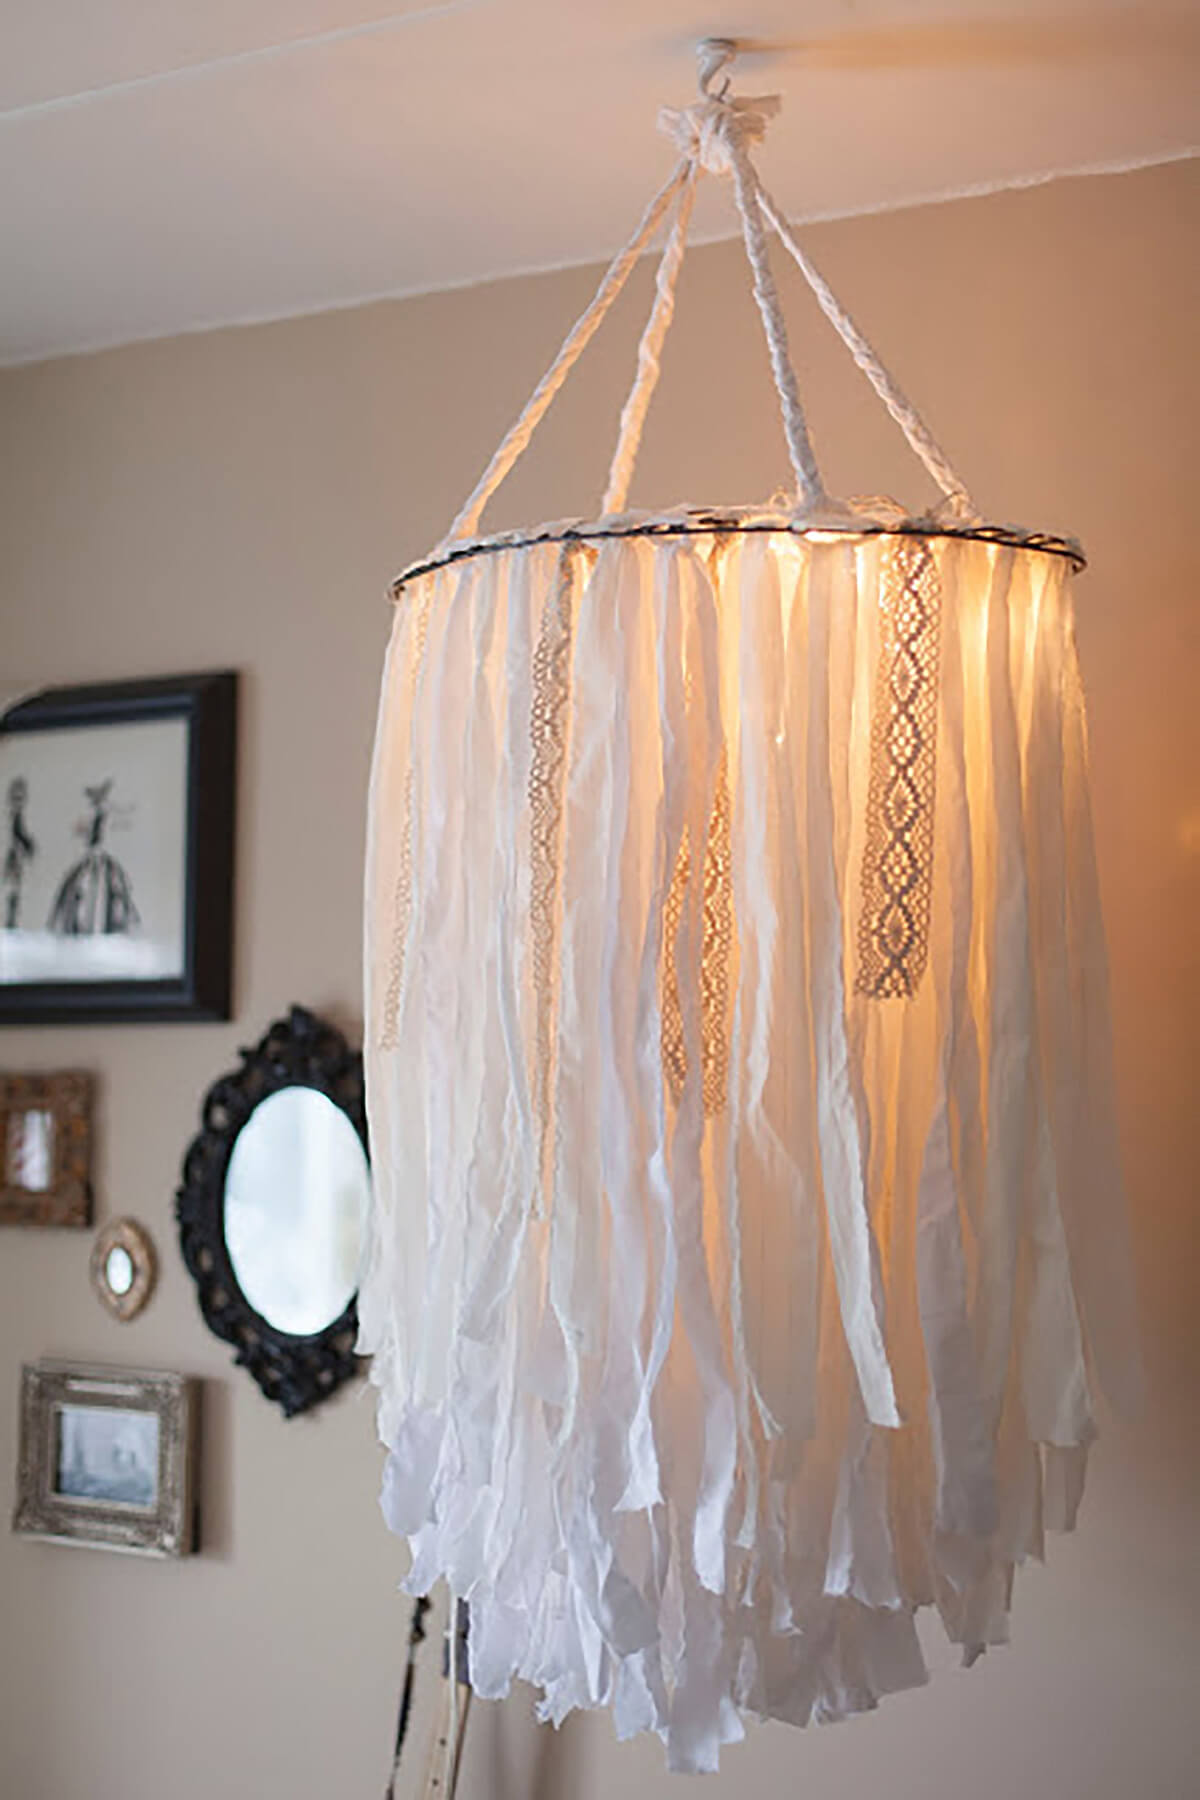 diy lighting truss. Diy Lighting. 34. Luxurious Canopied Material Lampshade Lighting Truss